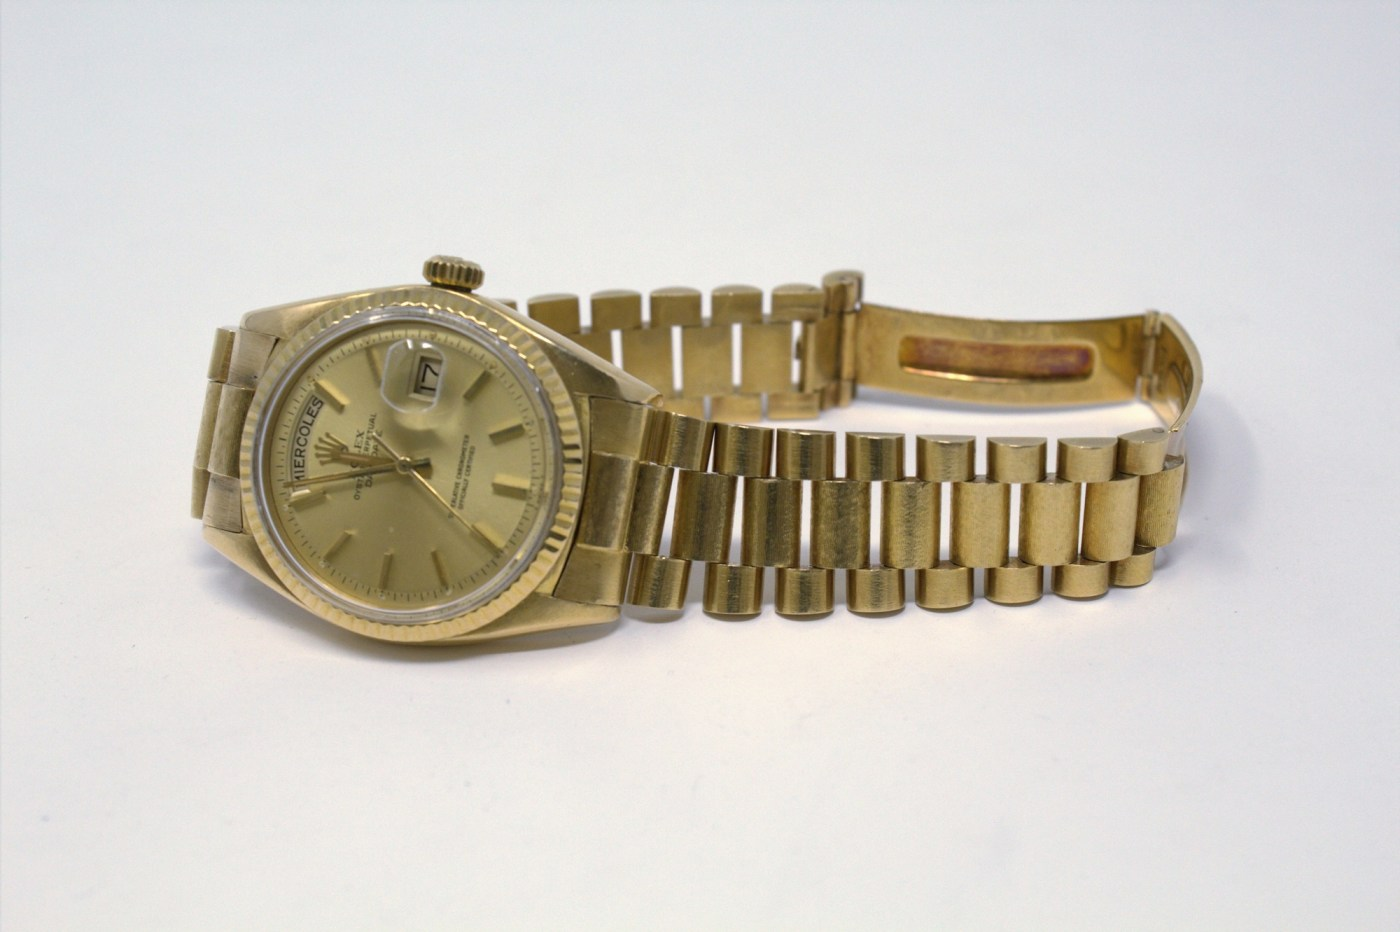 Rolex Yellow Gold Day-Date at Chronoexpert